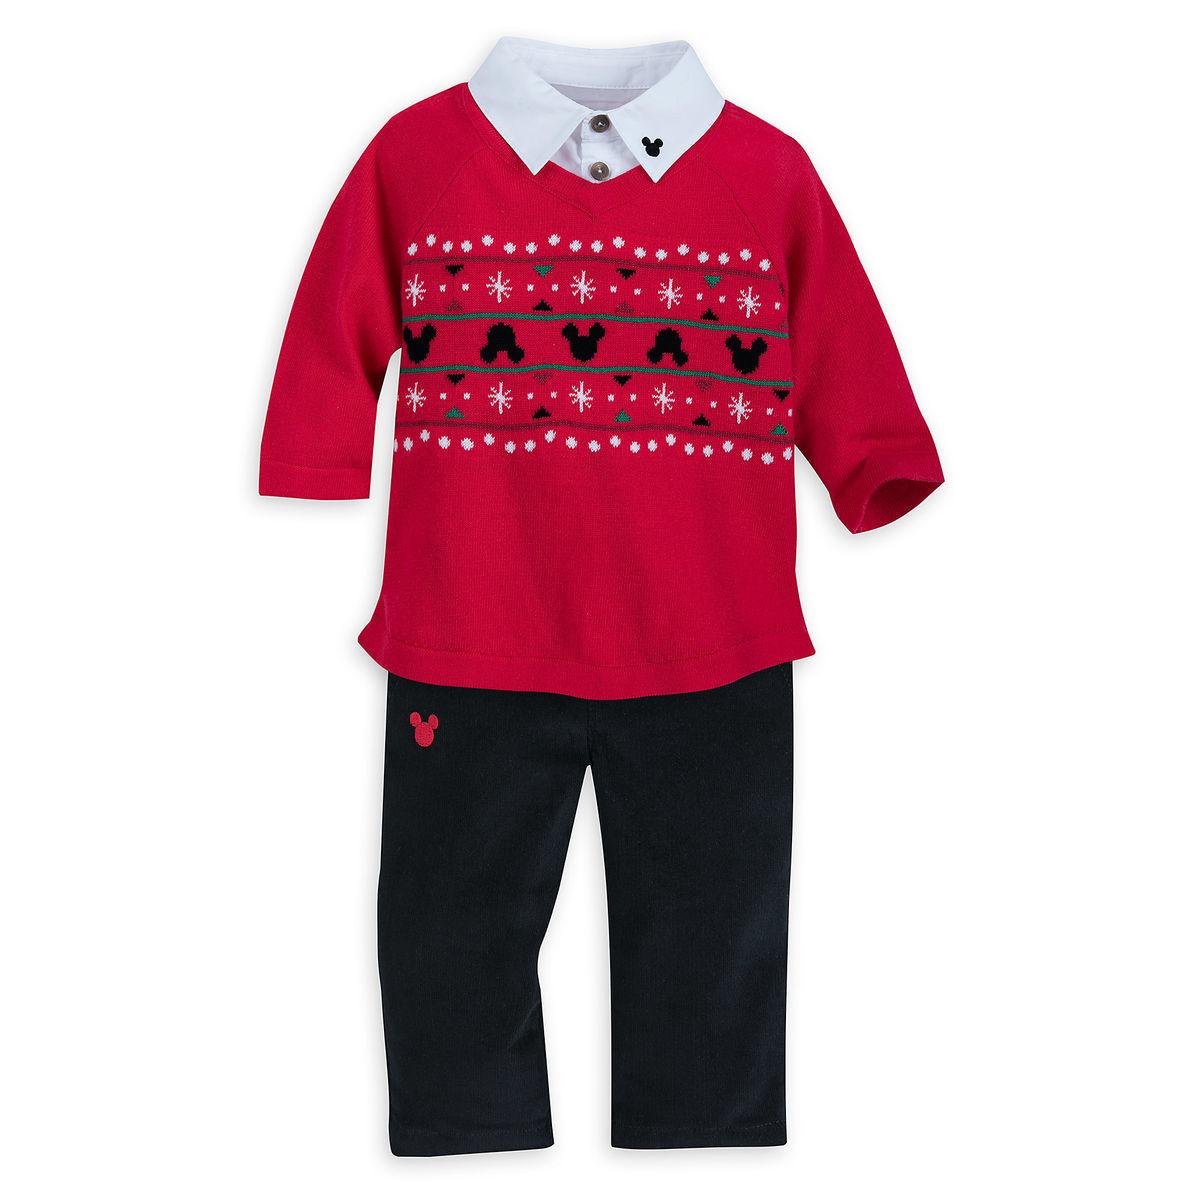 Santa Mickey Mouse Sweater And Pants Set For Baby Shopdisney